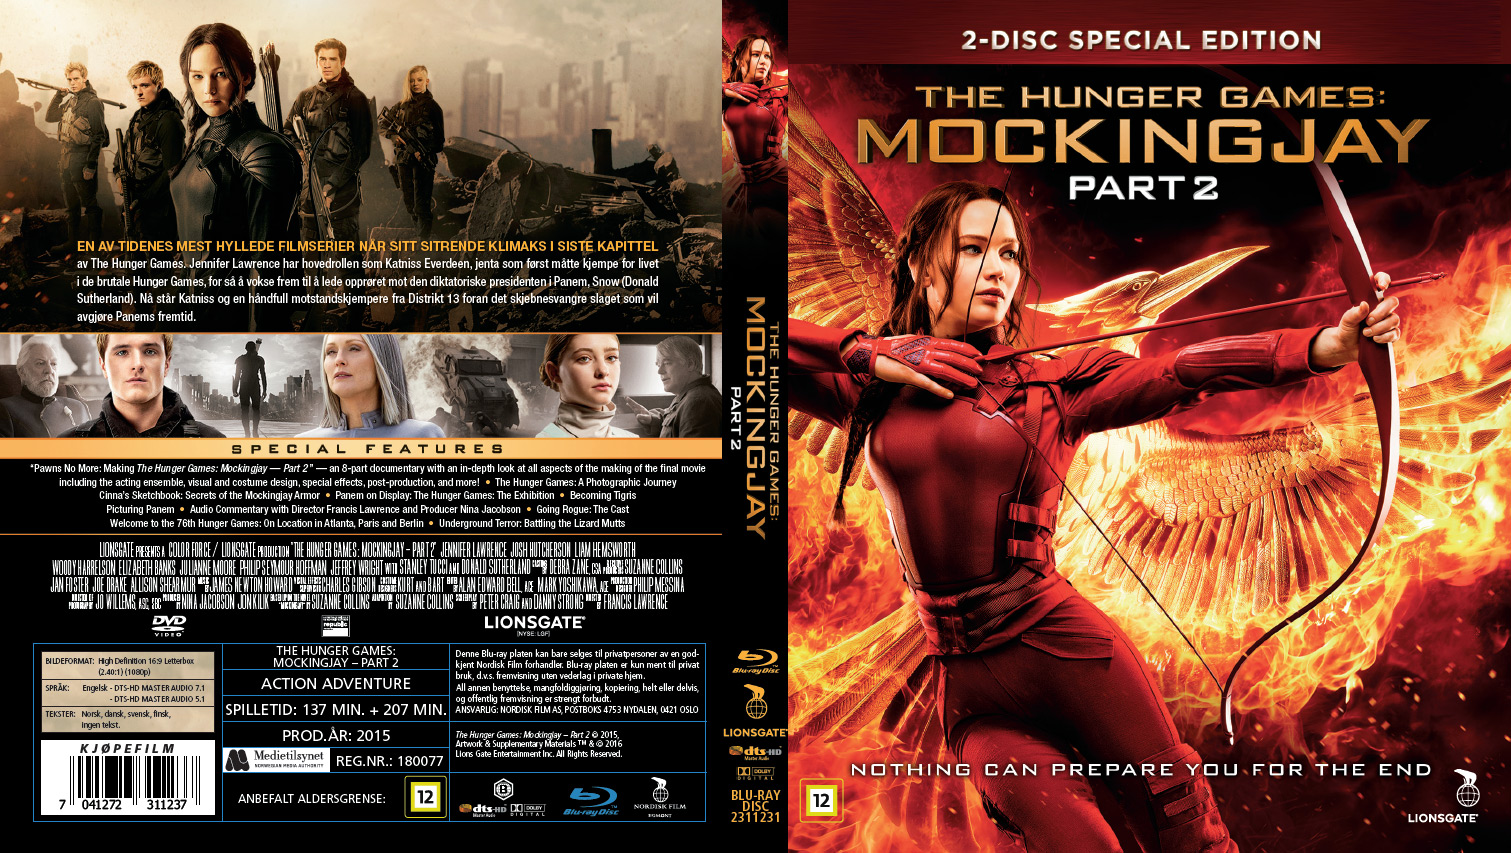 THE HUNGER GAMES MOCKINGJAY  PART 2  Movieguide